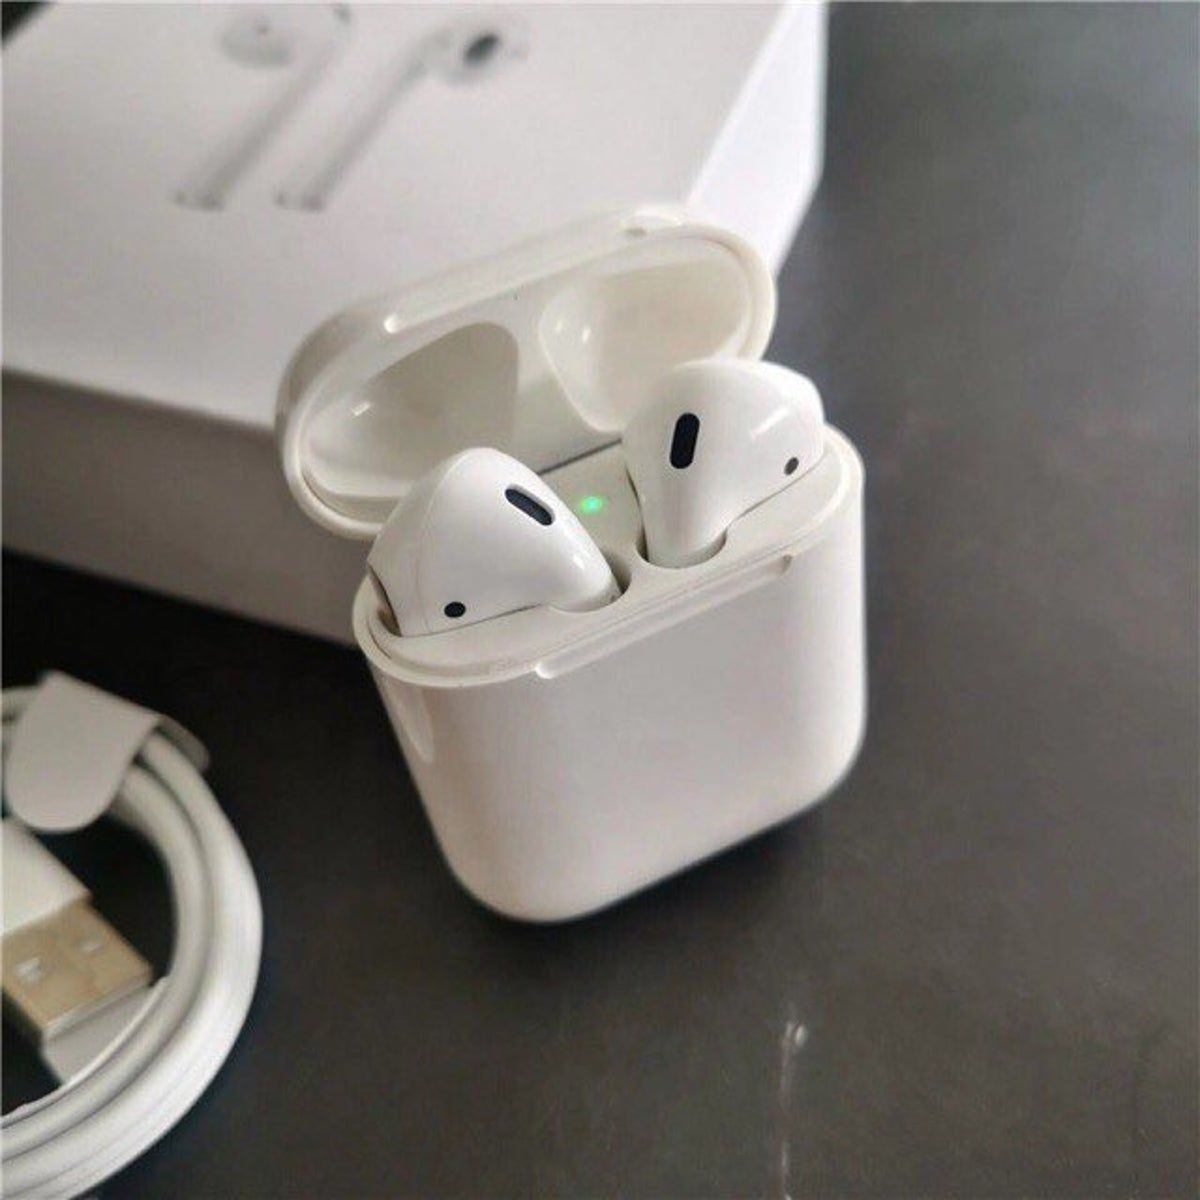 Airpods Pro Airpodspro Airpods Apple Airpodsapple Appleaipods Appleairpodspro Naushniki Headphon Airpods Pro Noise Cancelling Active Noise Cancellation